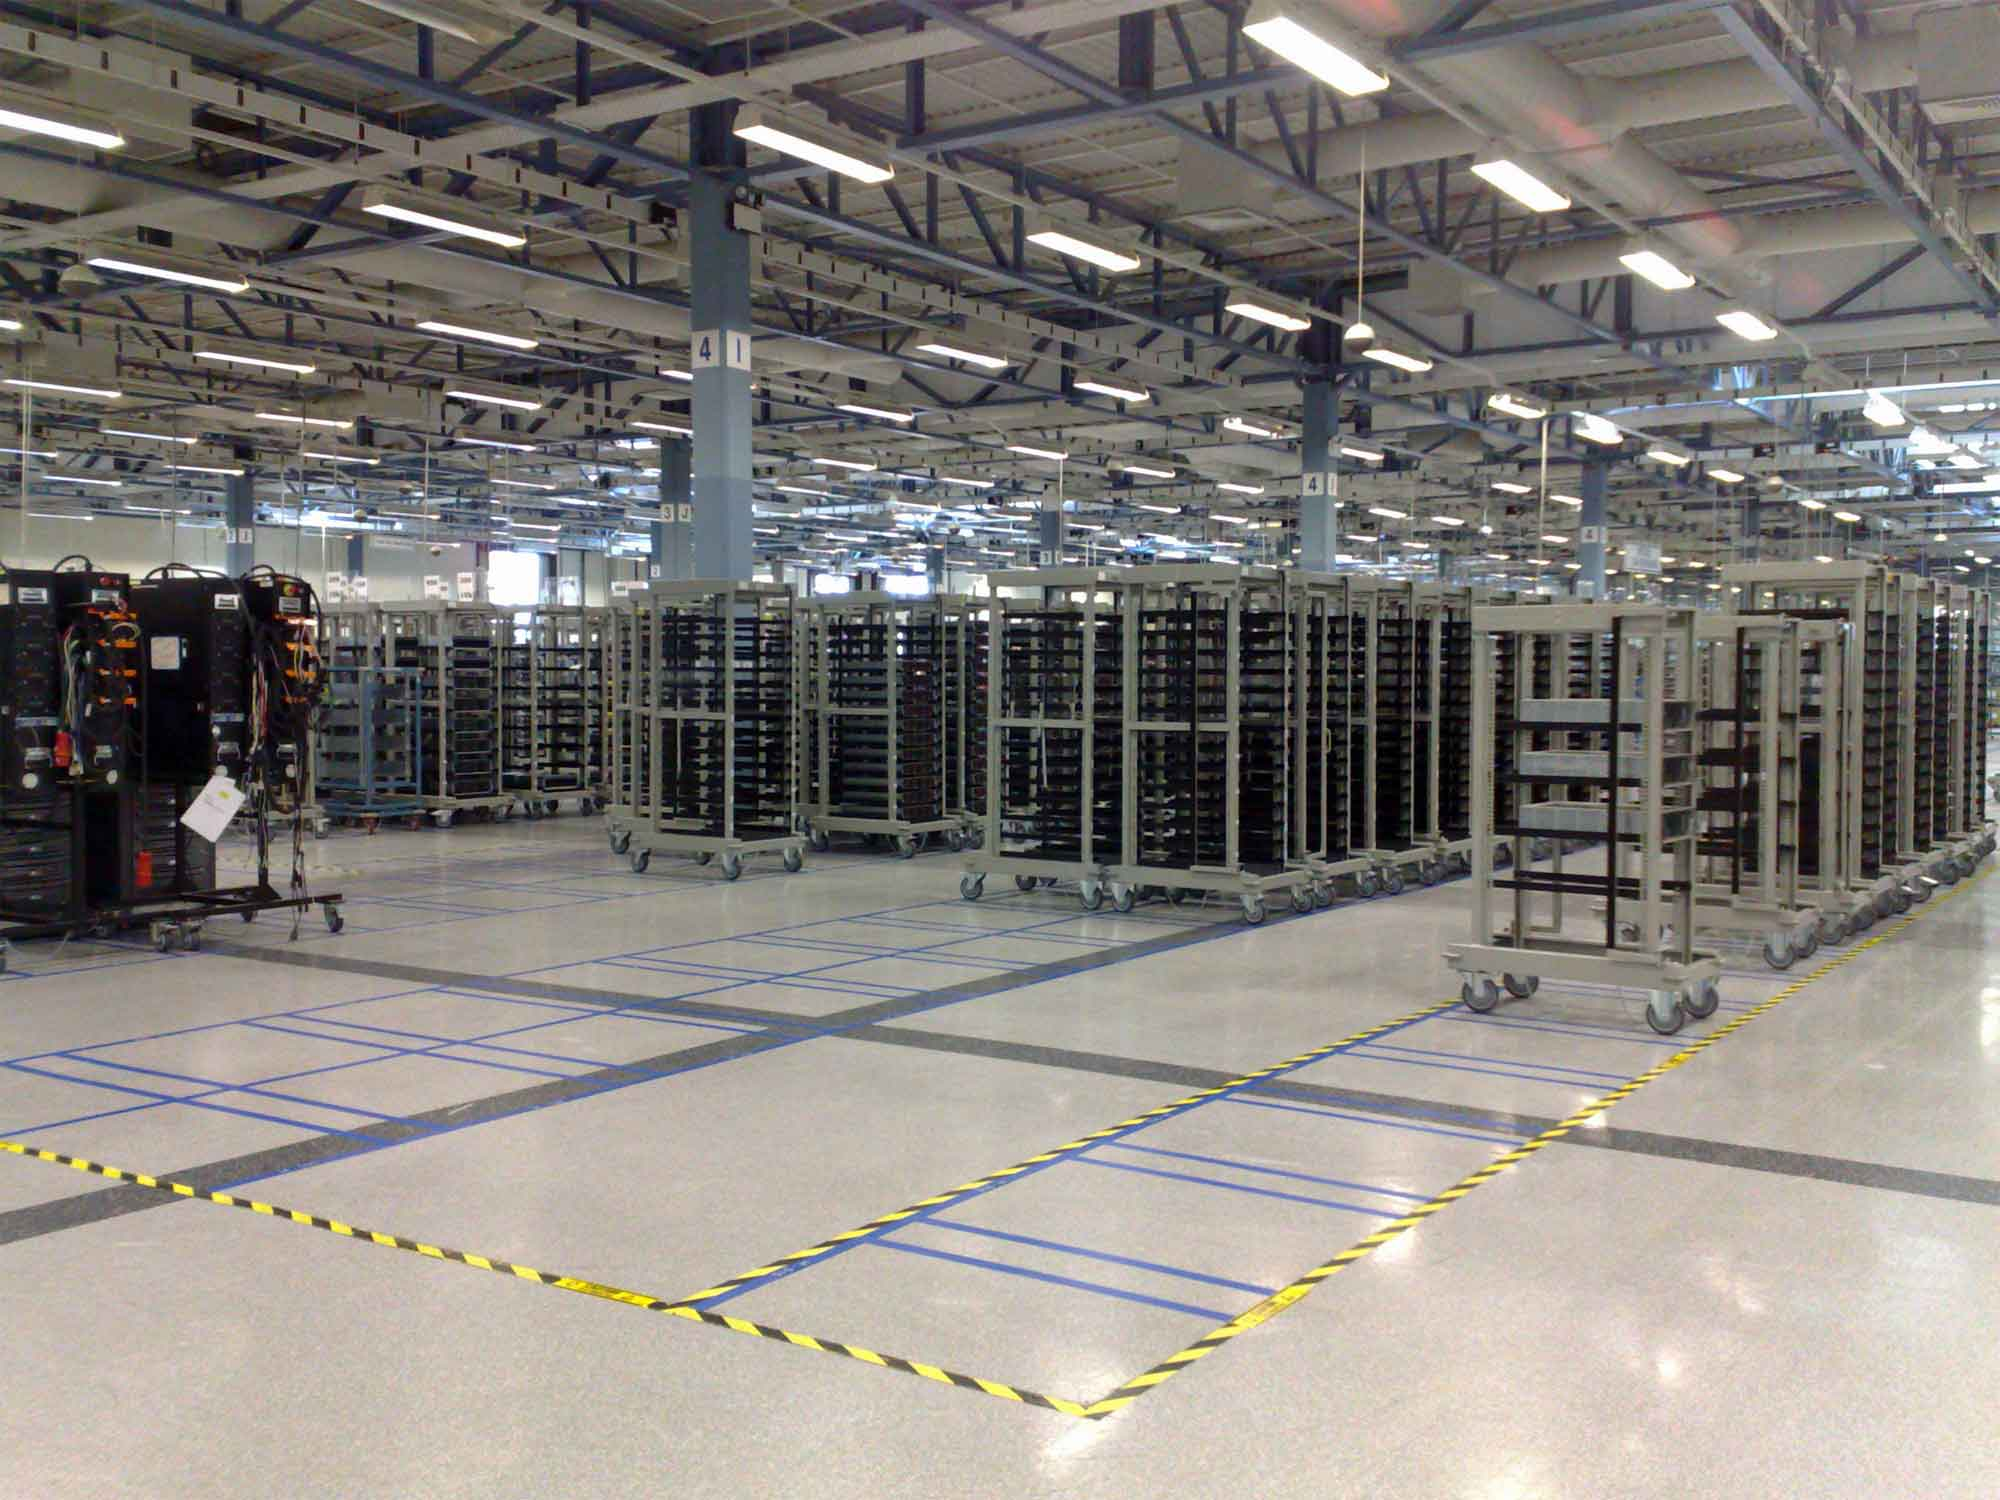 Photograph showing server trolleys in a large warehouse with marked location positions